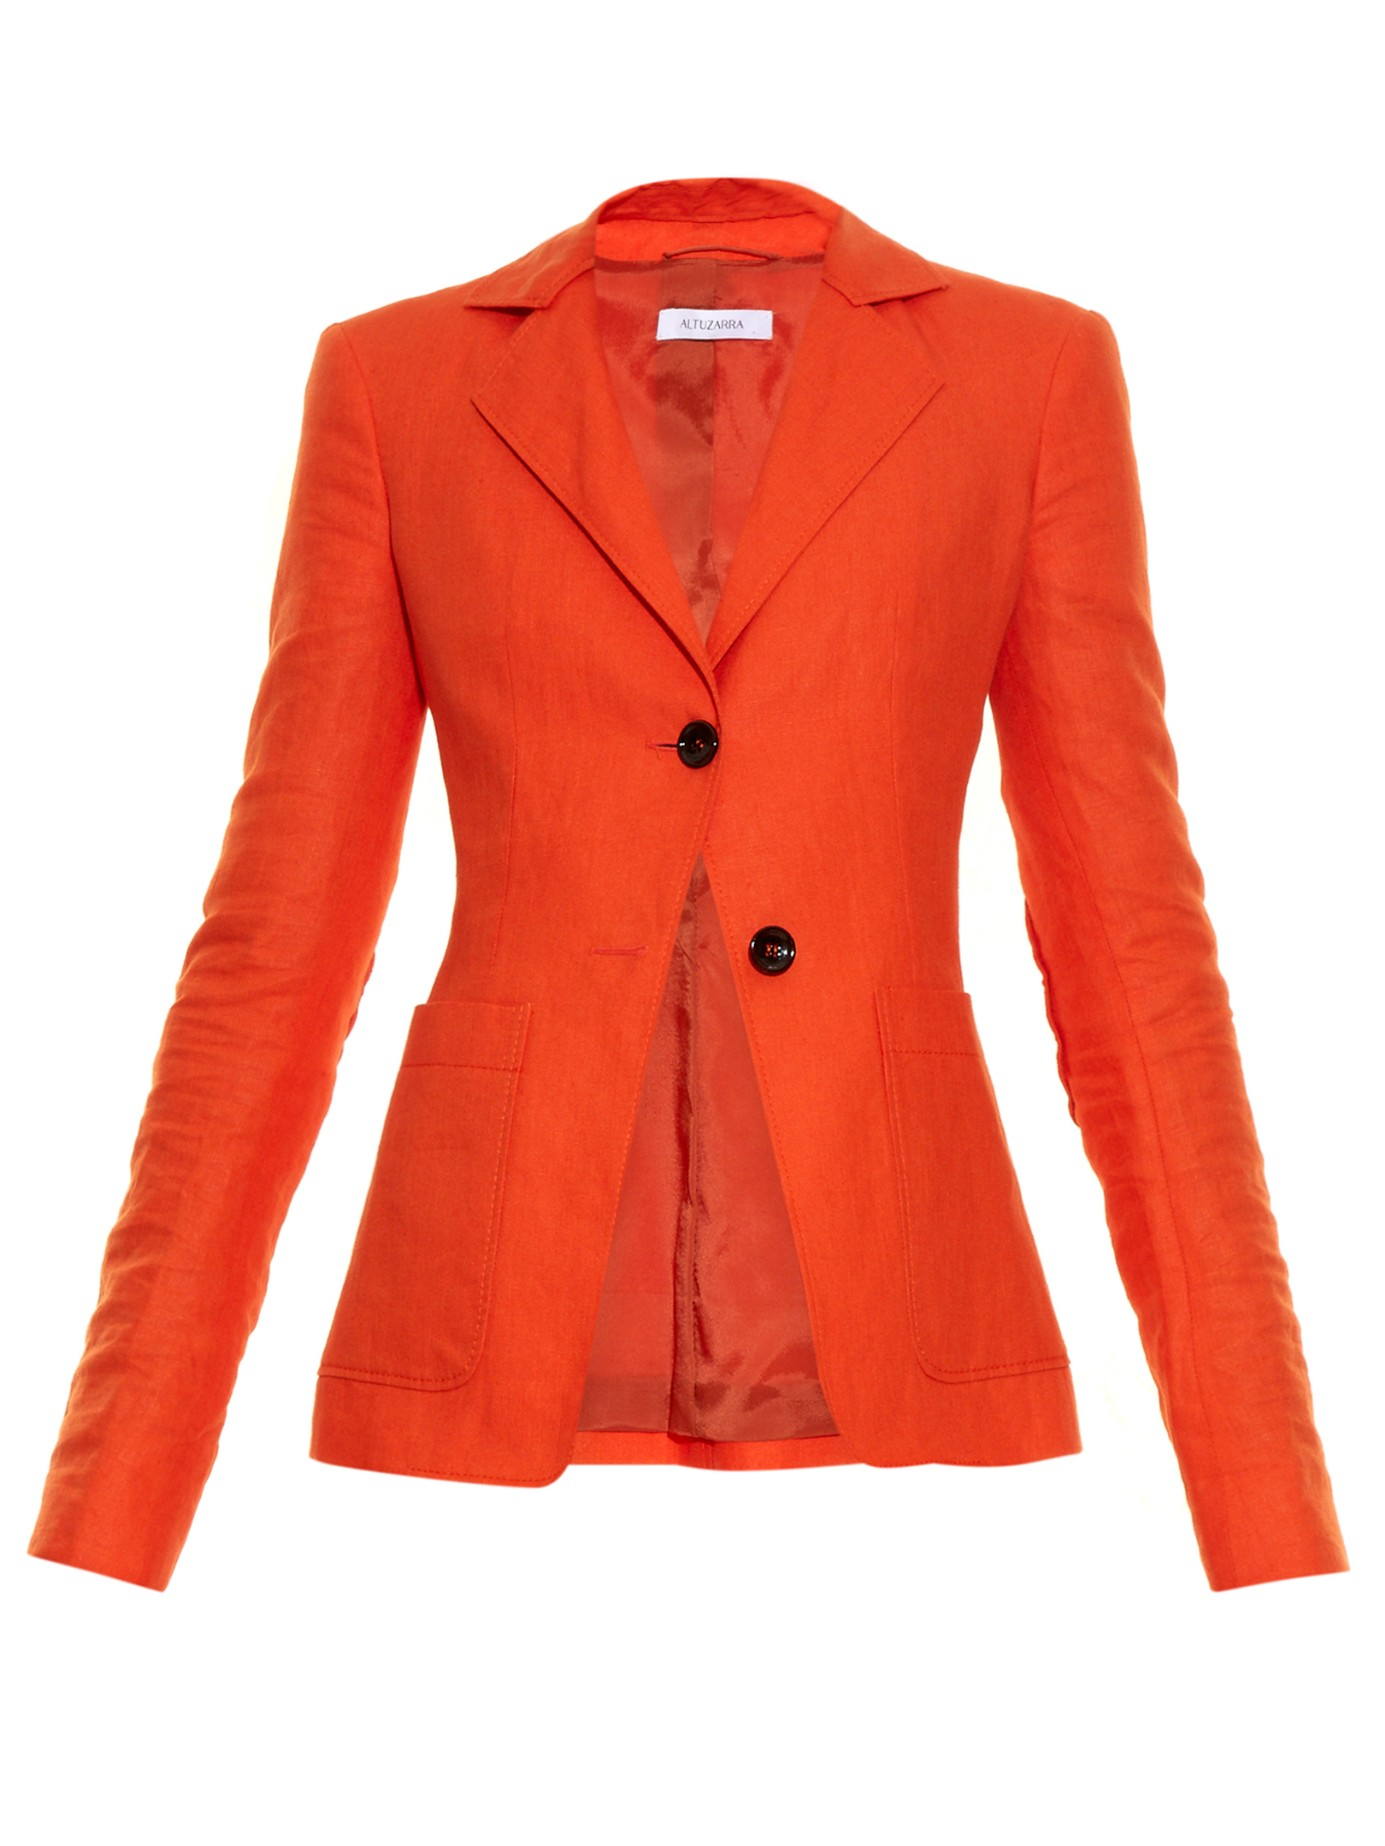 Shop our Collection of Women's Orange Jackets at 10mins.ml for the Latest Designer Brands & Styles. FREE SHIPPING AVAILABLE!